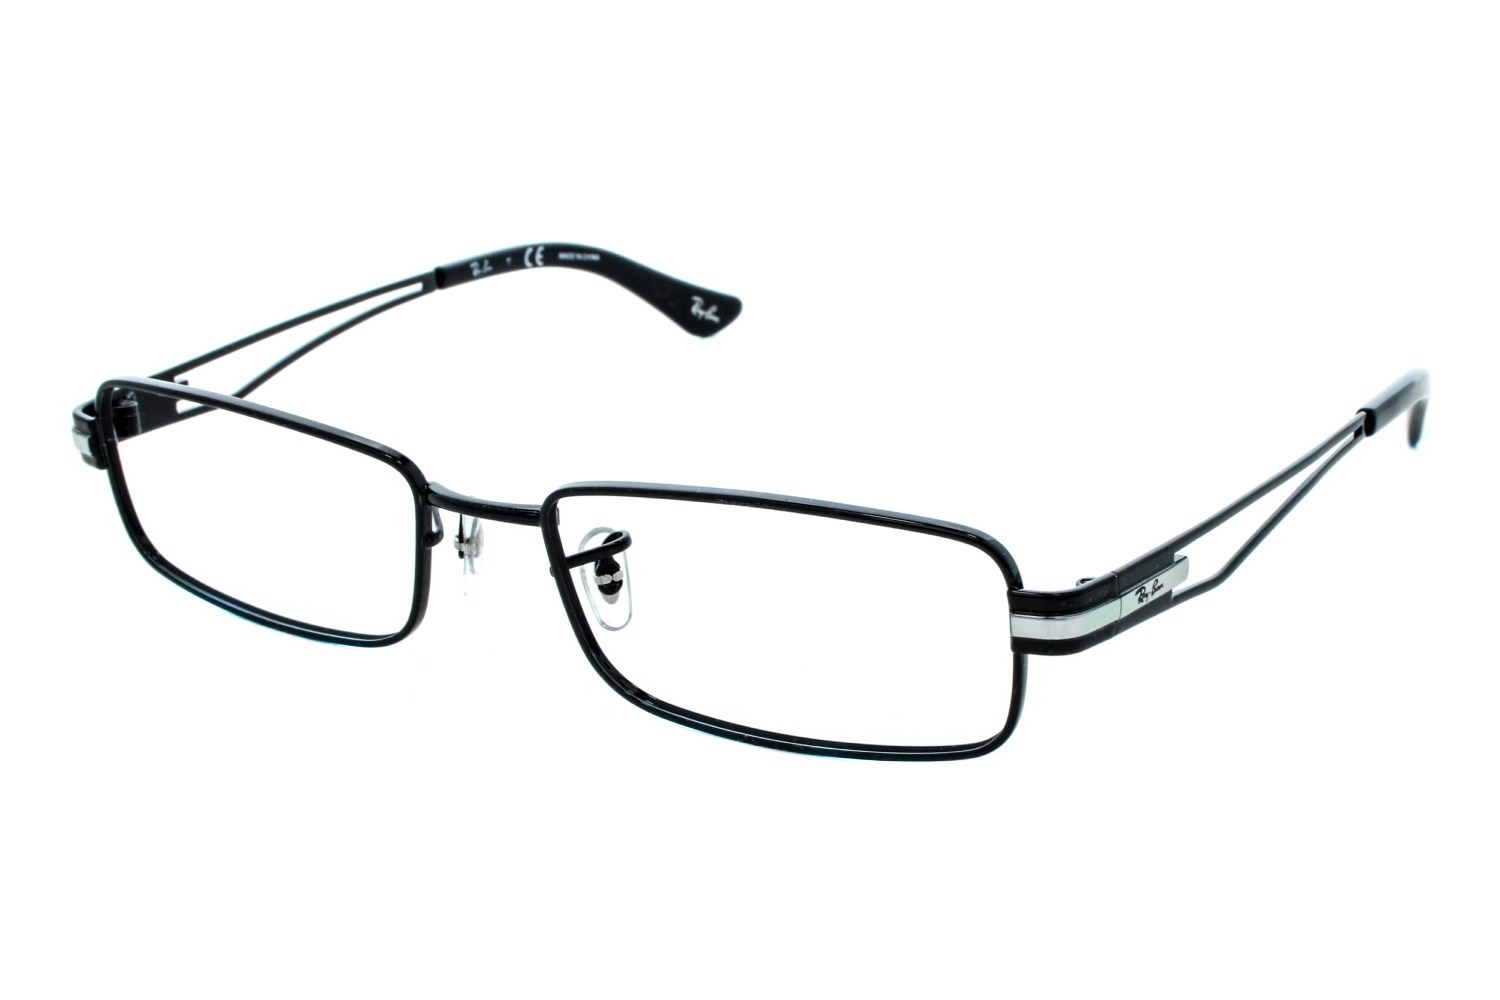 Eyeglass Frame Lookup : Ray Ban Rx 6193 Prescription Eyeglasses Frames ...